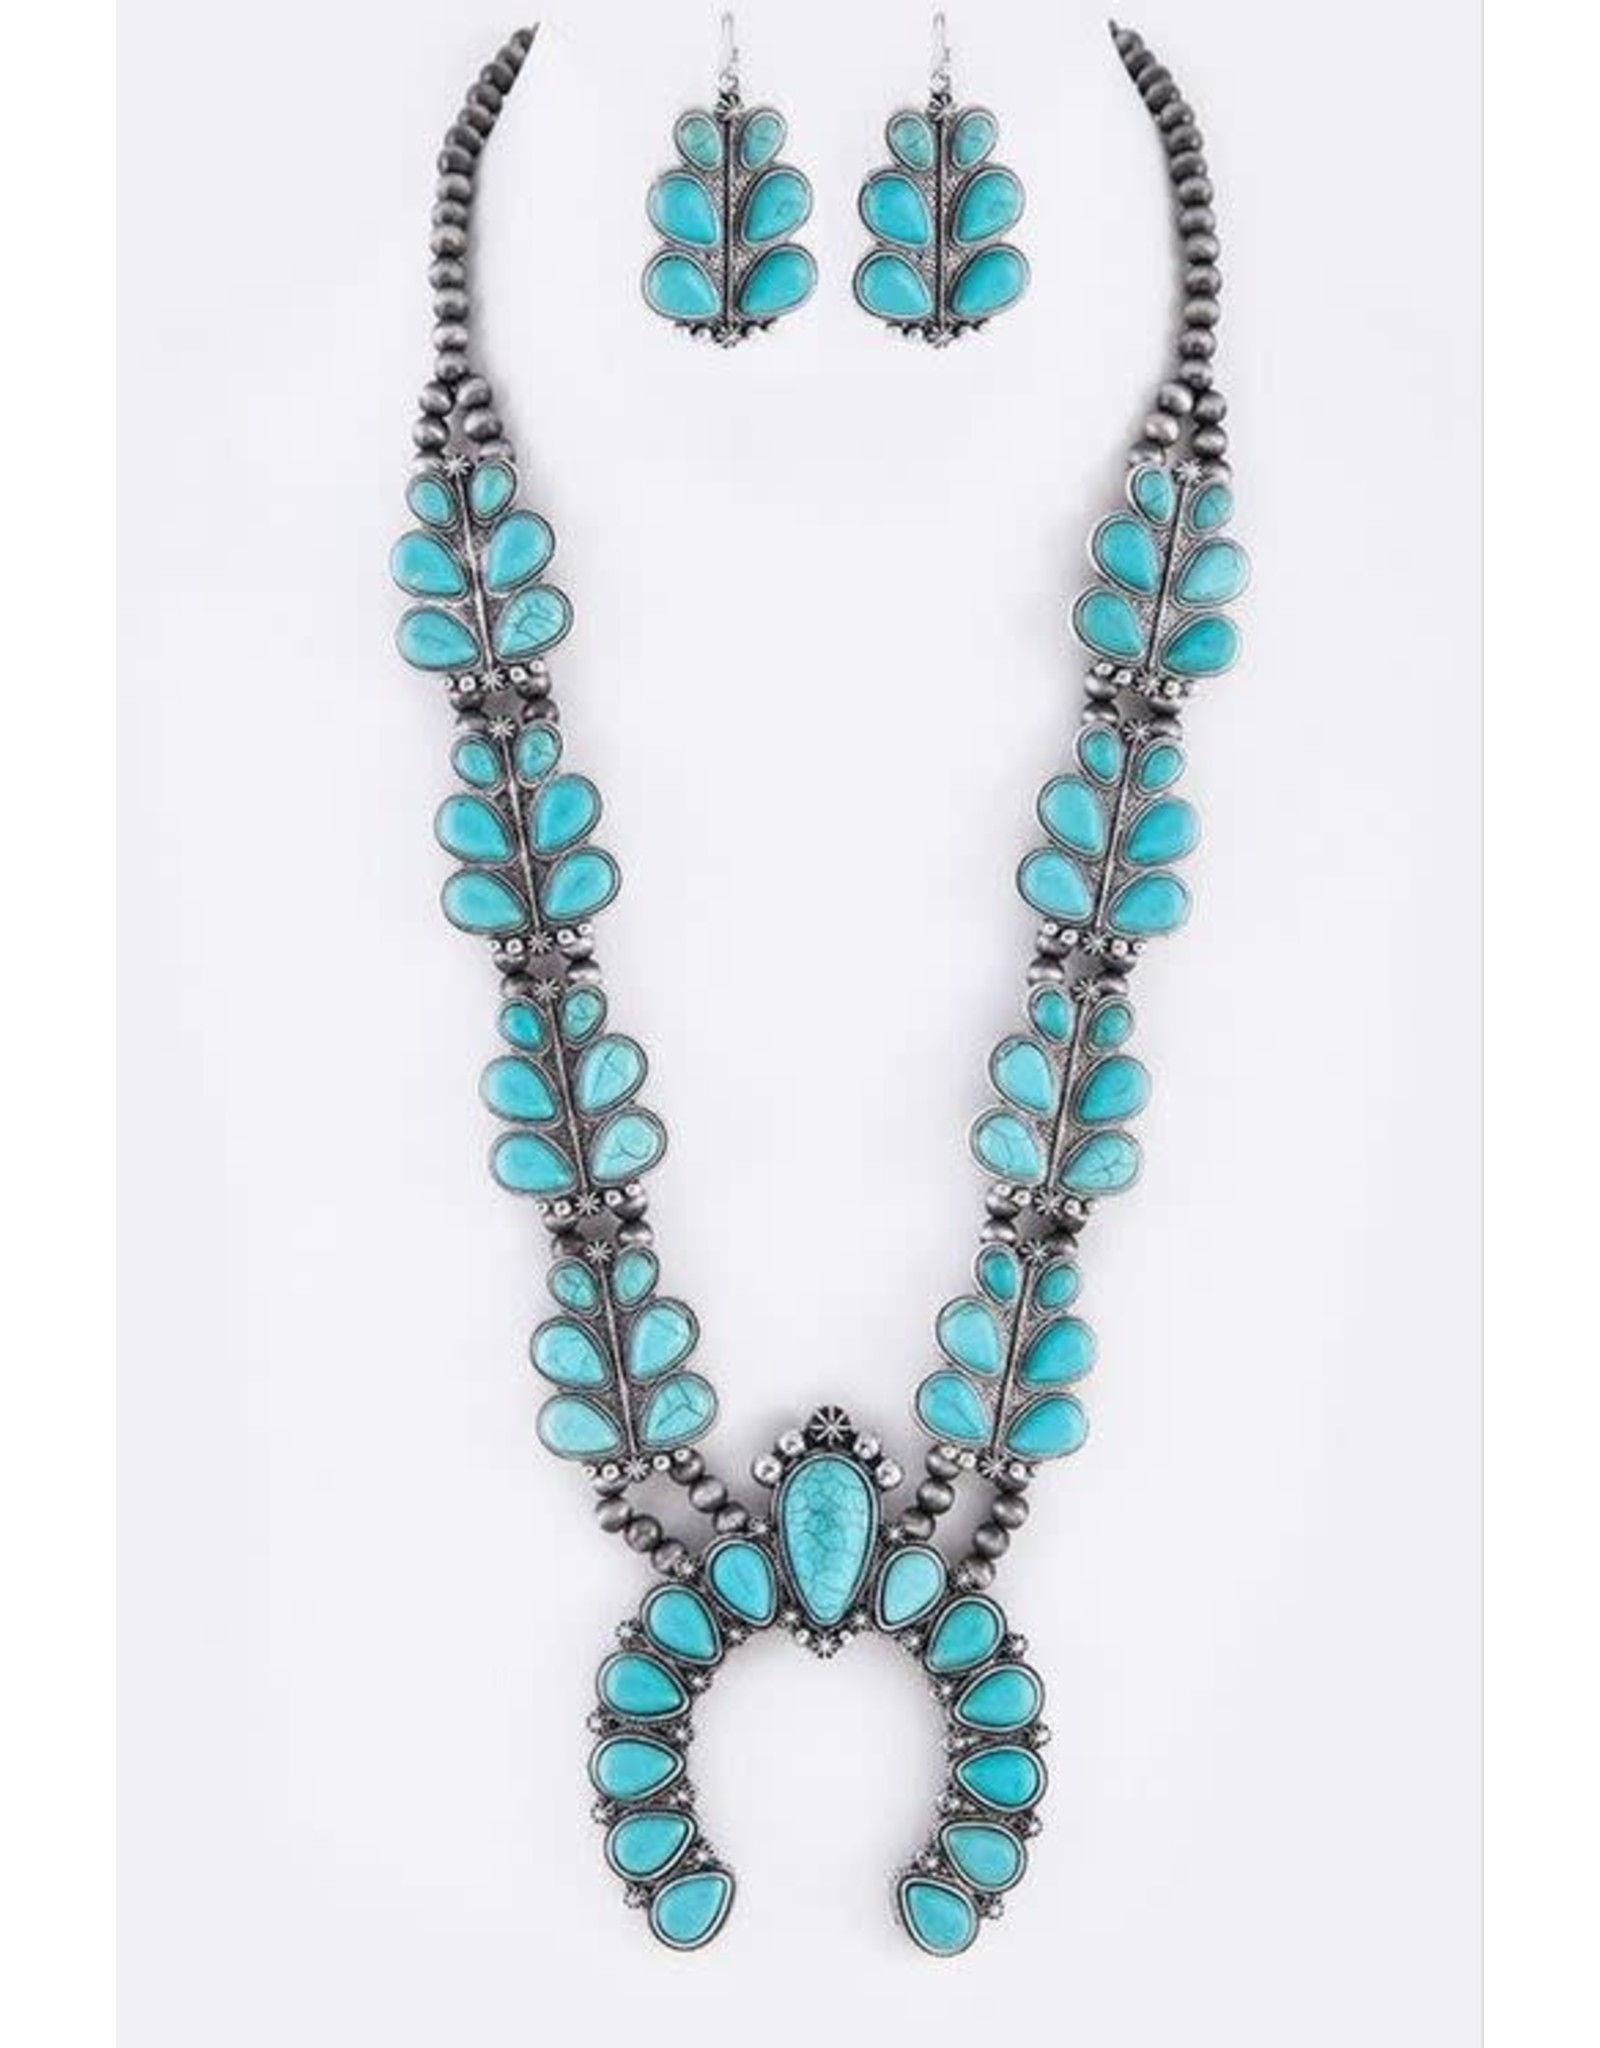 TURQUOISE / SILVER SQUASH BLOSSOM NECKLACE SET